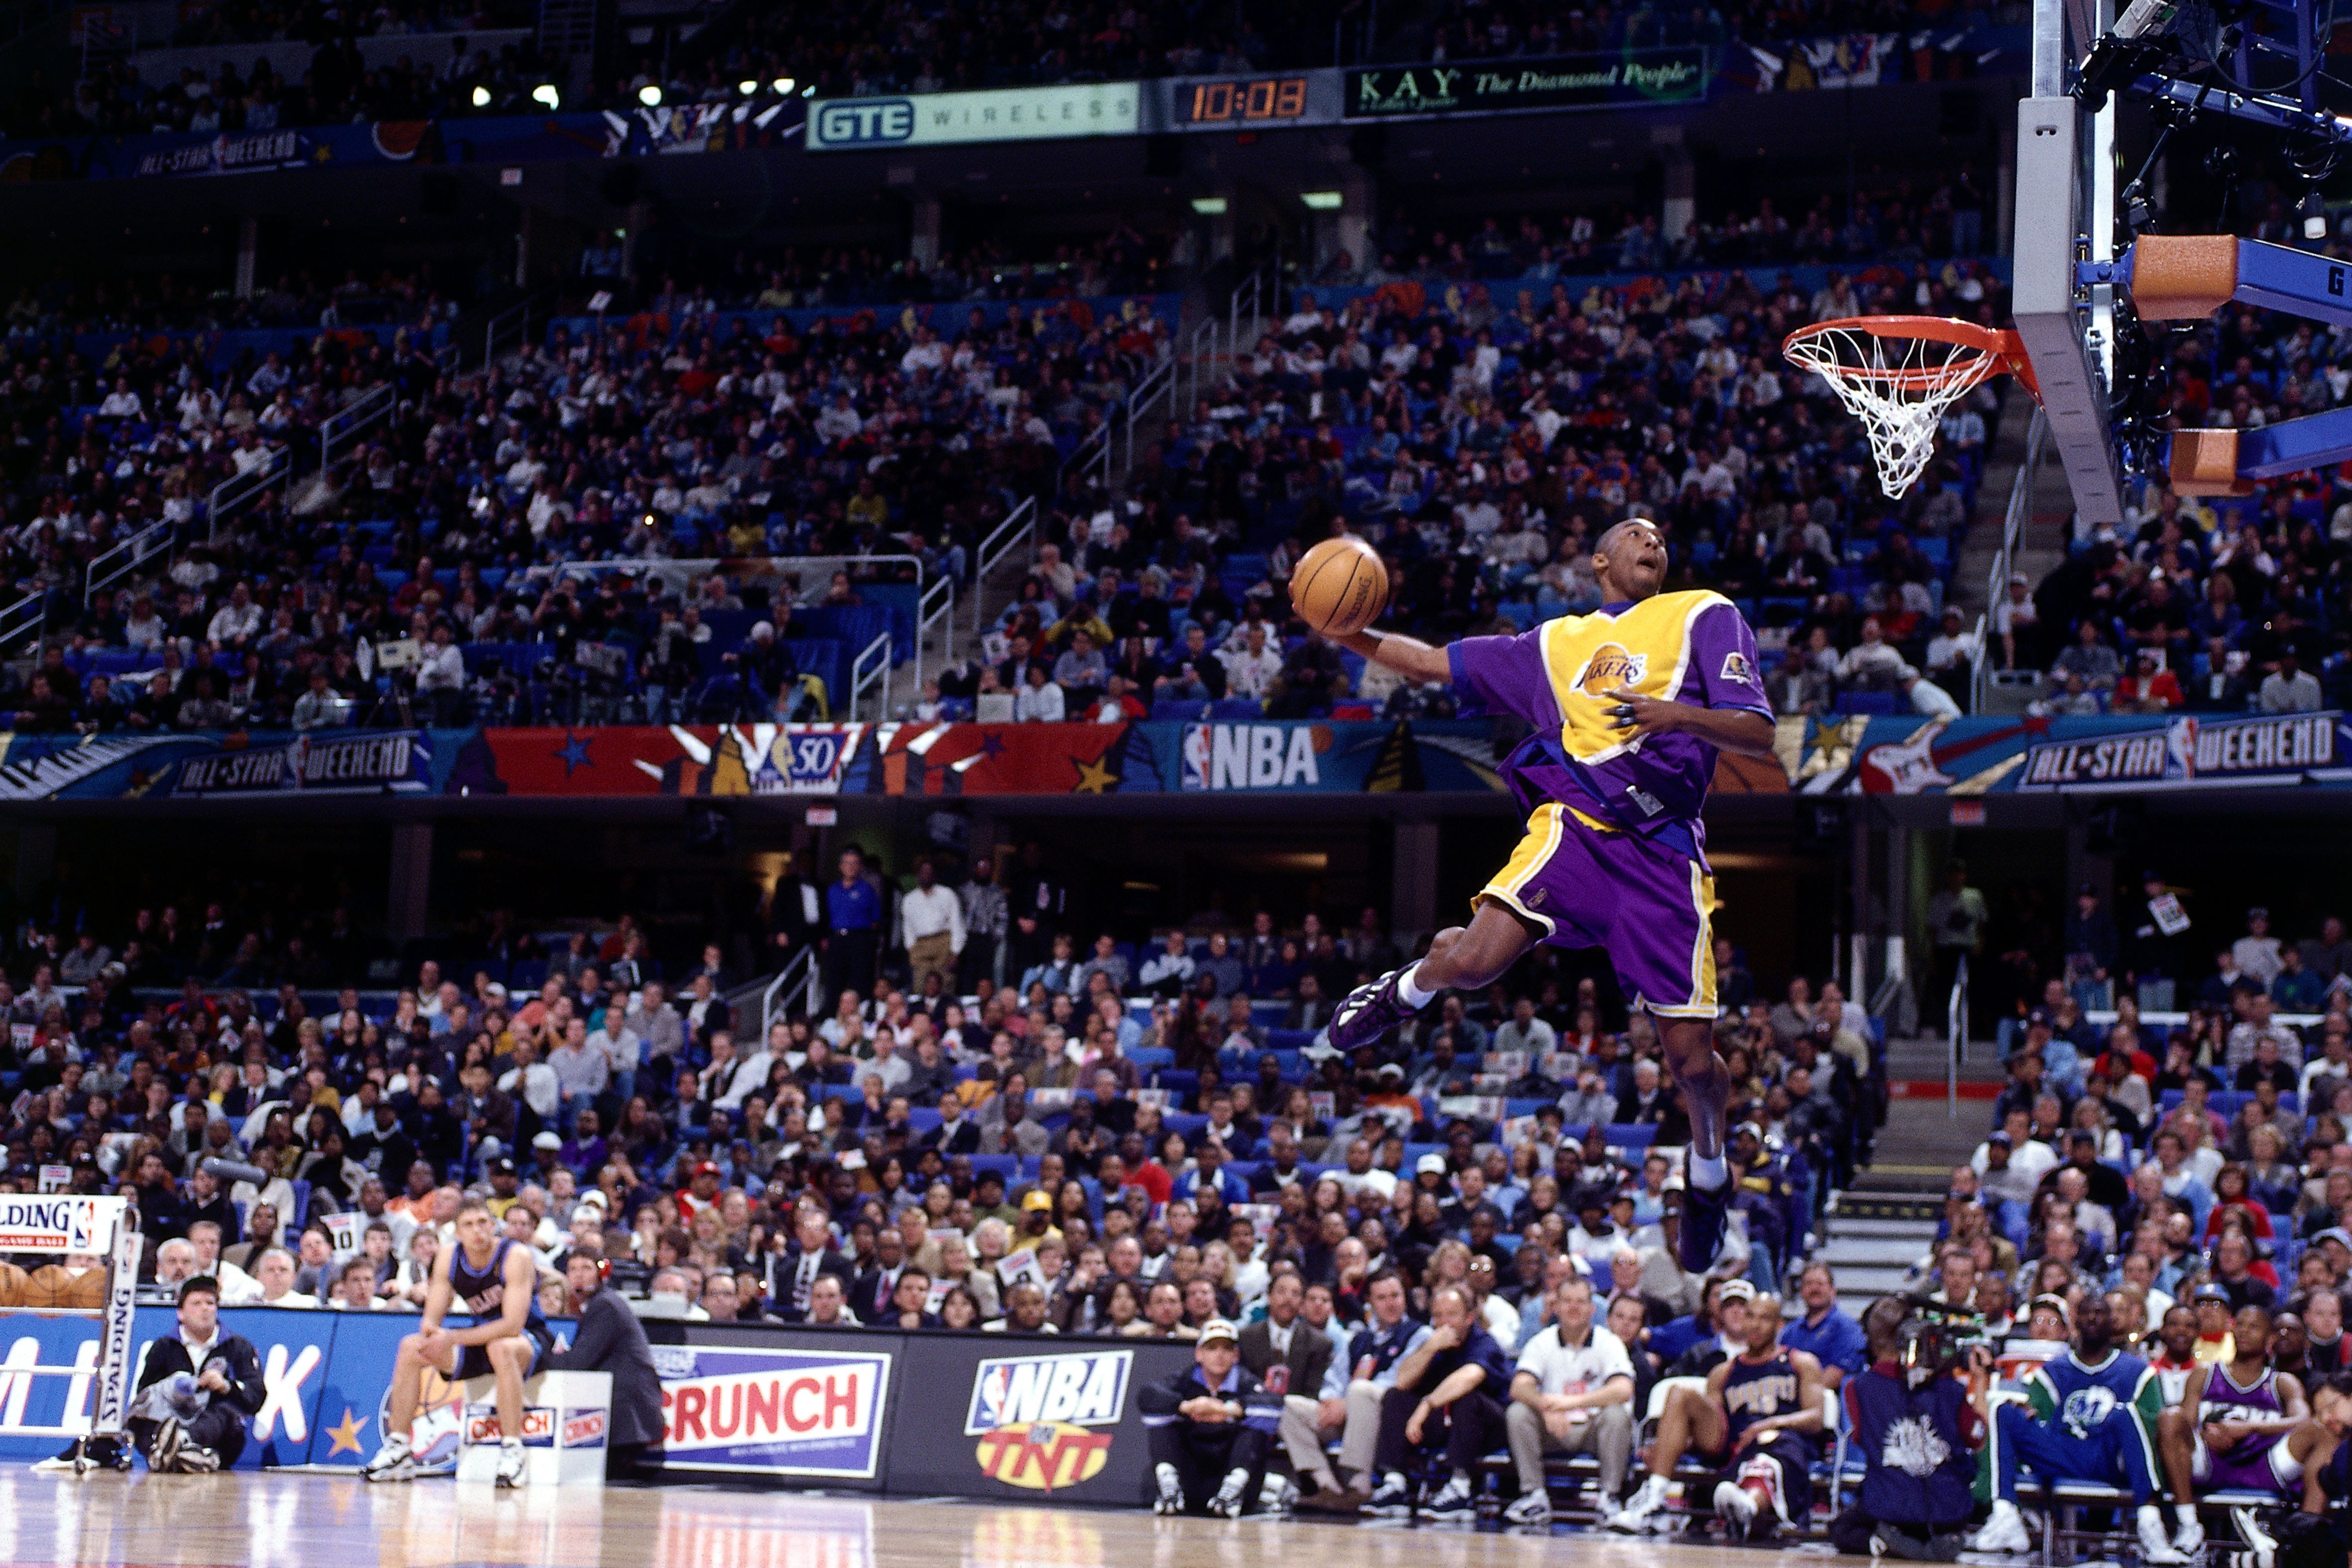 Bryant goes up for one of the dunks that won him first place in the NBA All-Star Slam Dunk Contest at Gund Arena on Feb.&nbsp